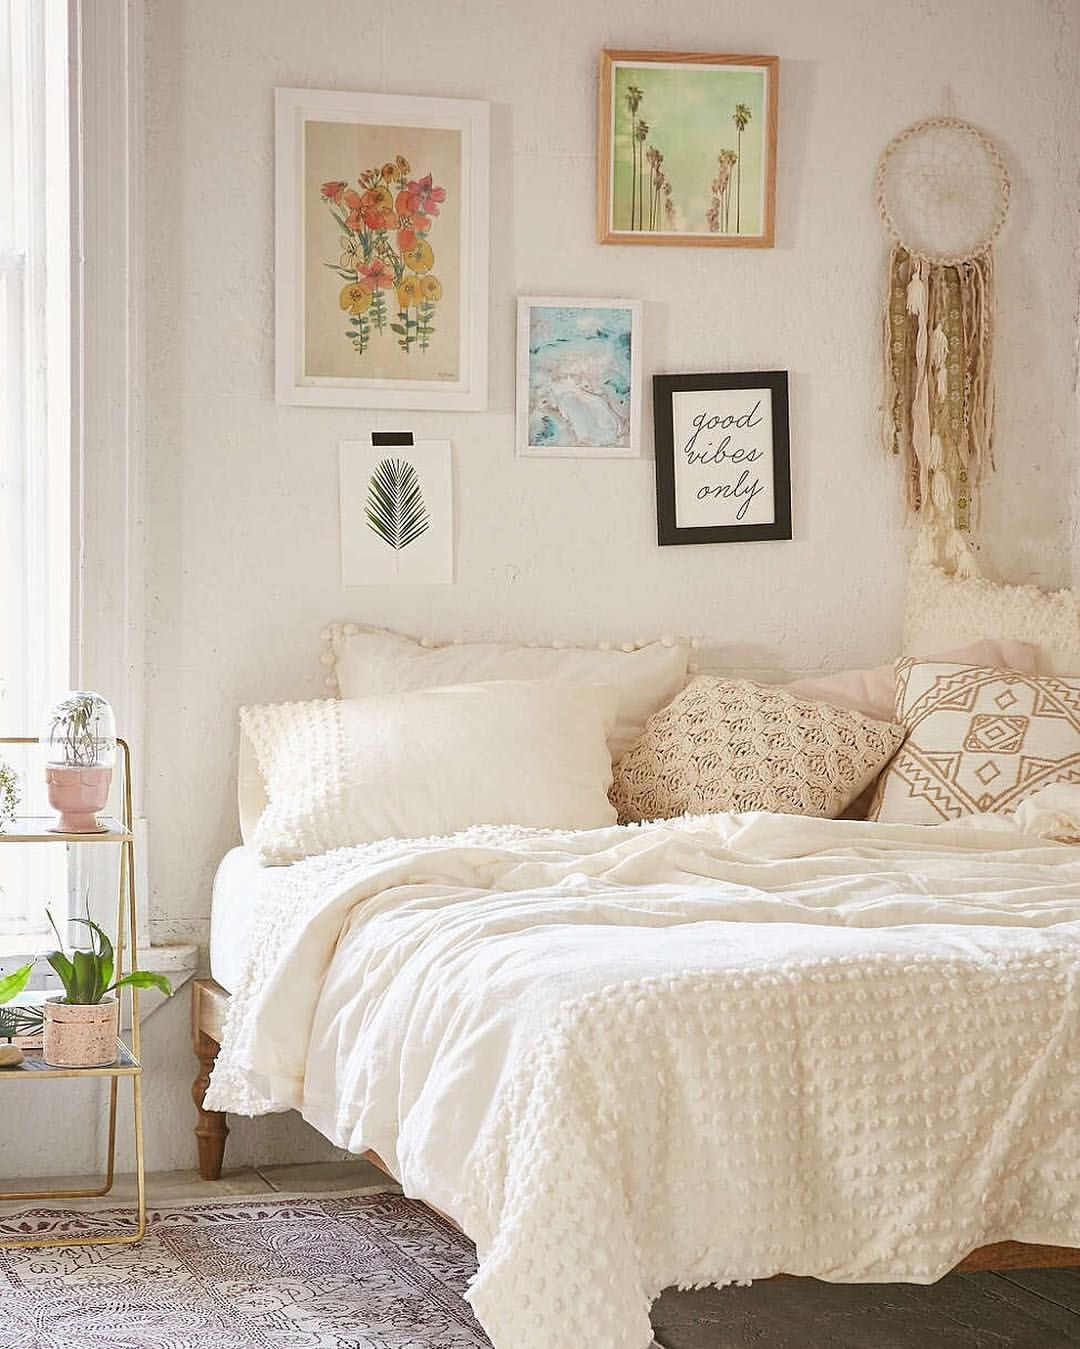 Master bedroom artwork  We found our happy place  UOHome  sleep  Pinterest  Dorm